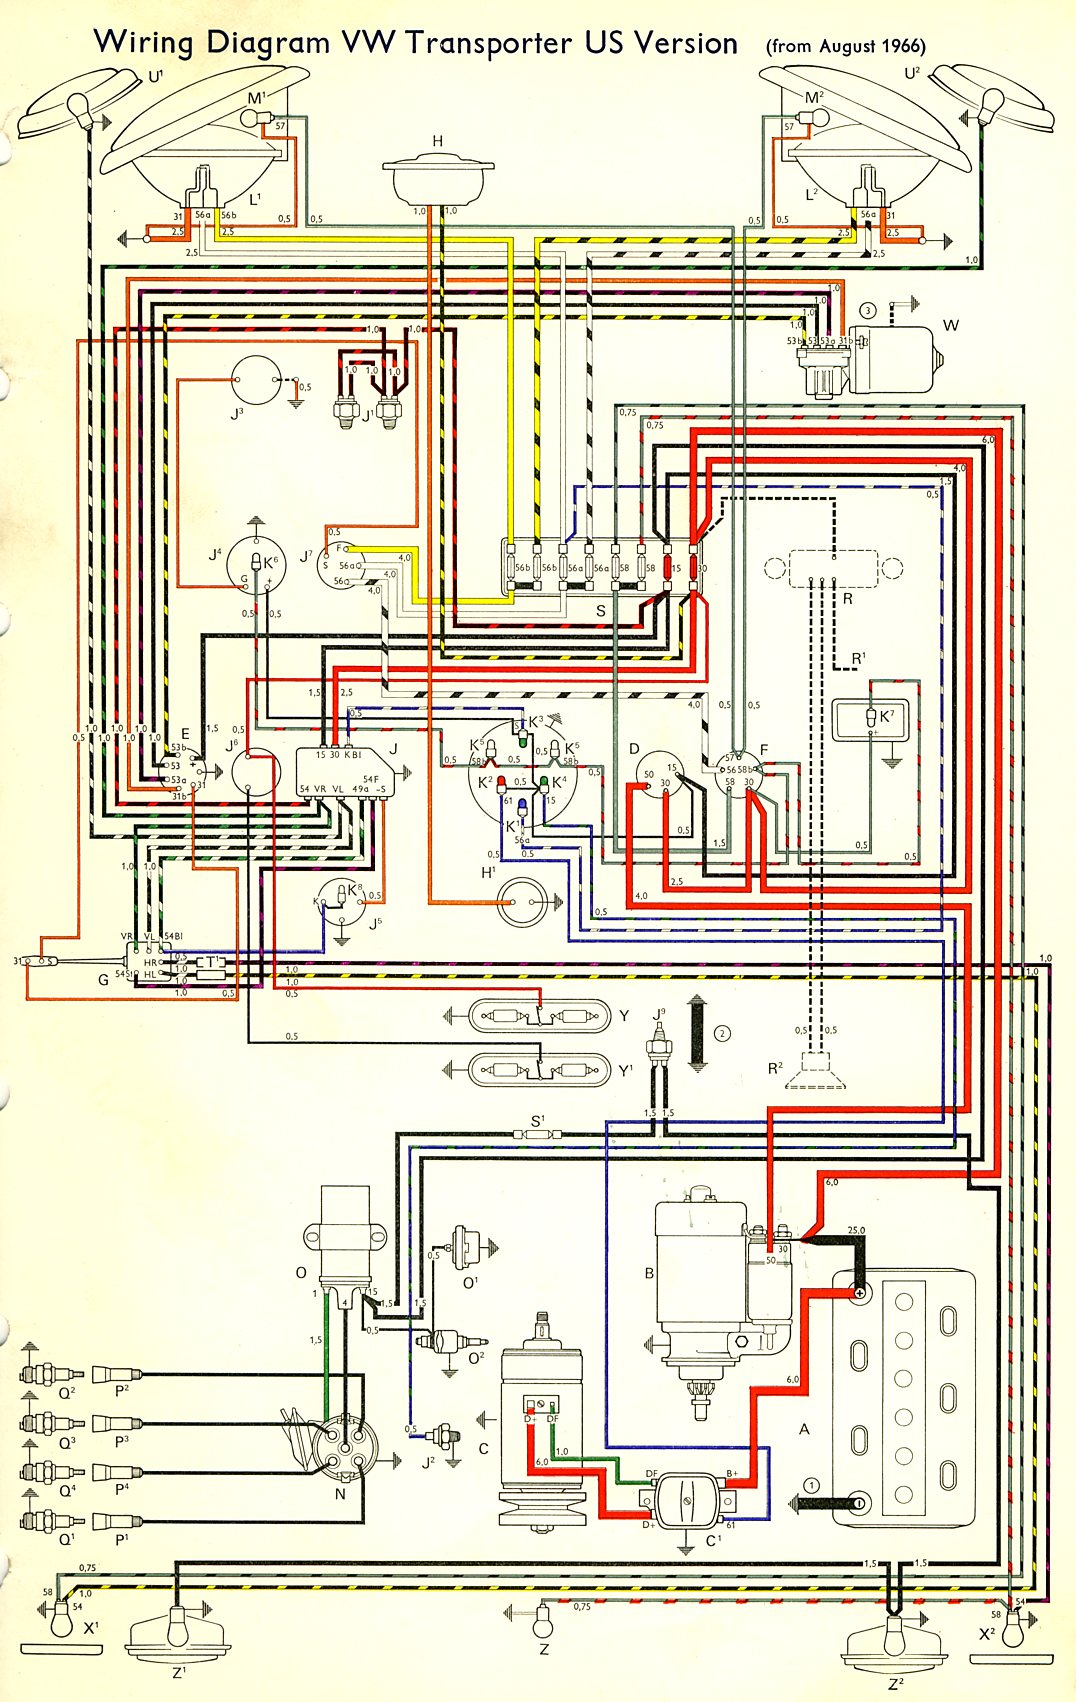 Wiring Diagram For 1967 Vw Beetle : Vw beetle wiring harness get free image about